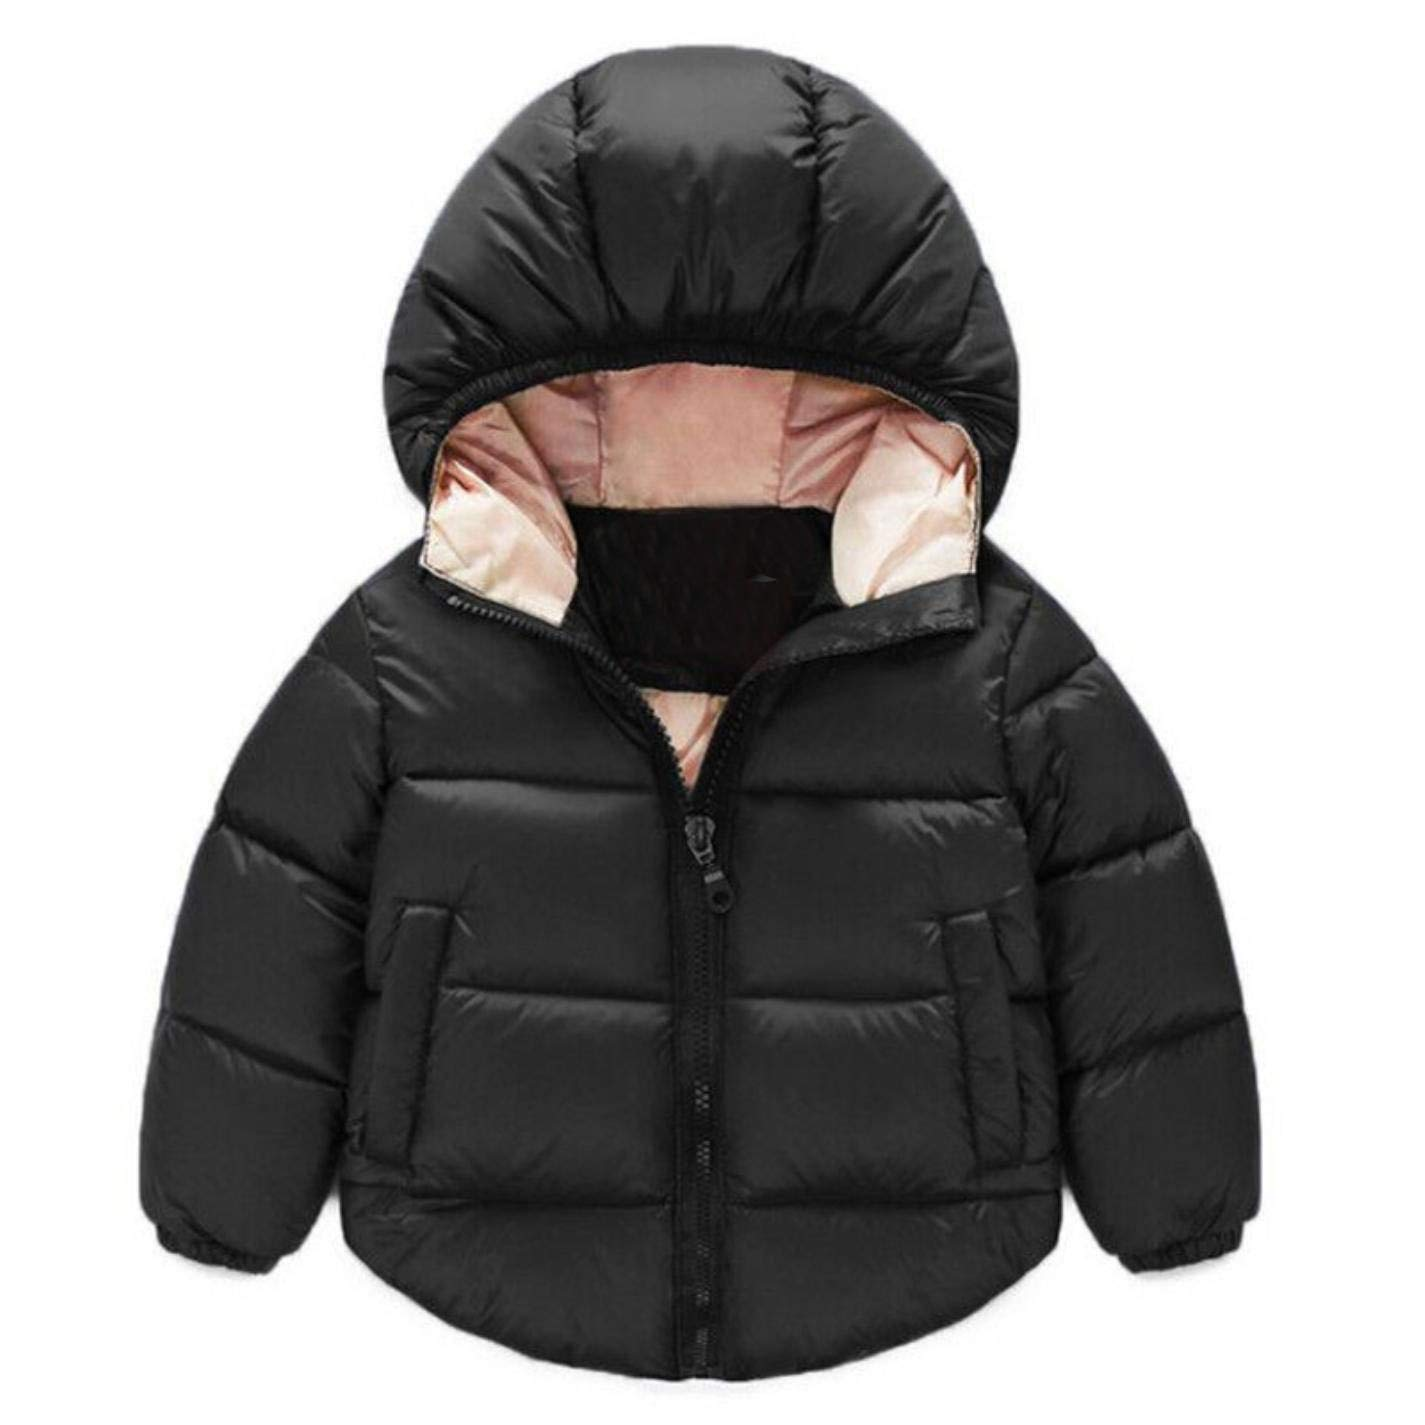 LzCxZDKN Baby Boys Girls Jacket Hooded Kids Outerwear Clothing Coat Children Jackets